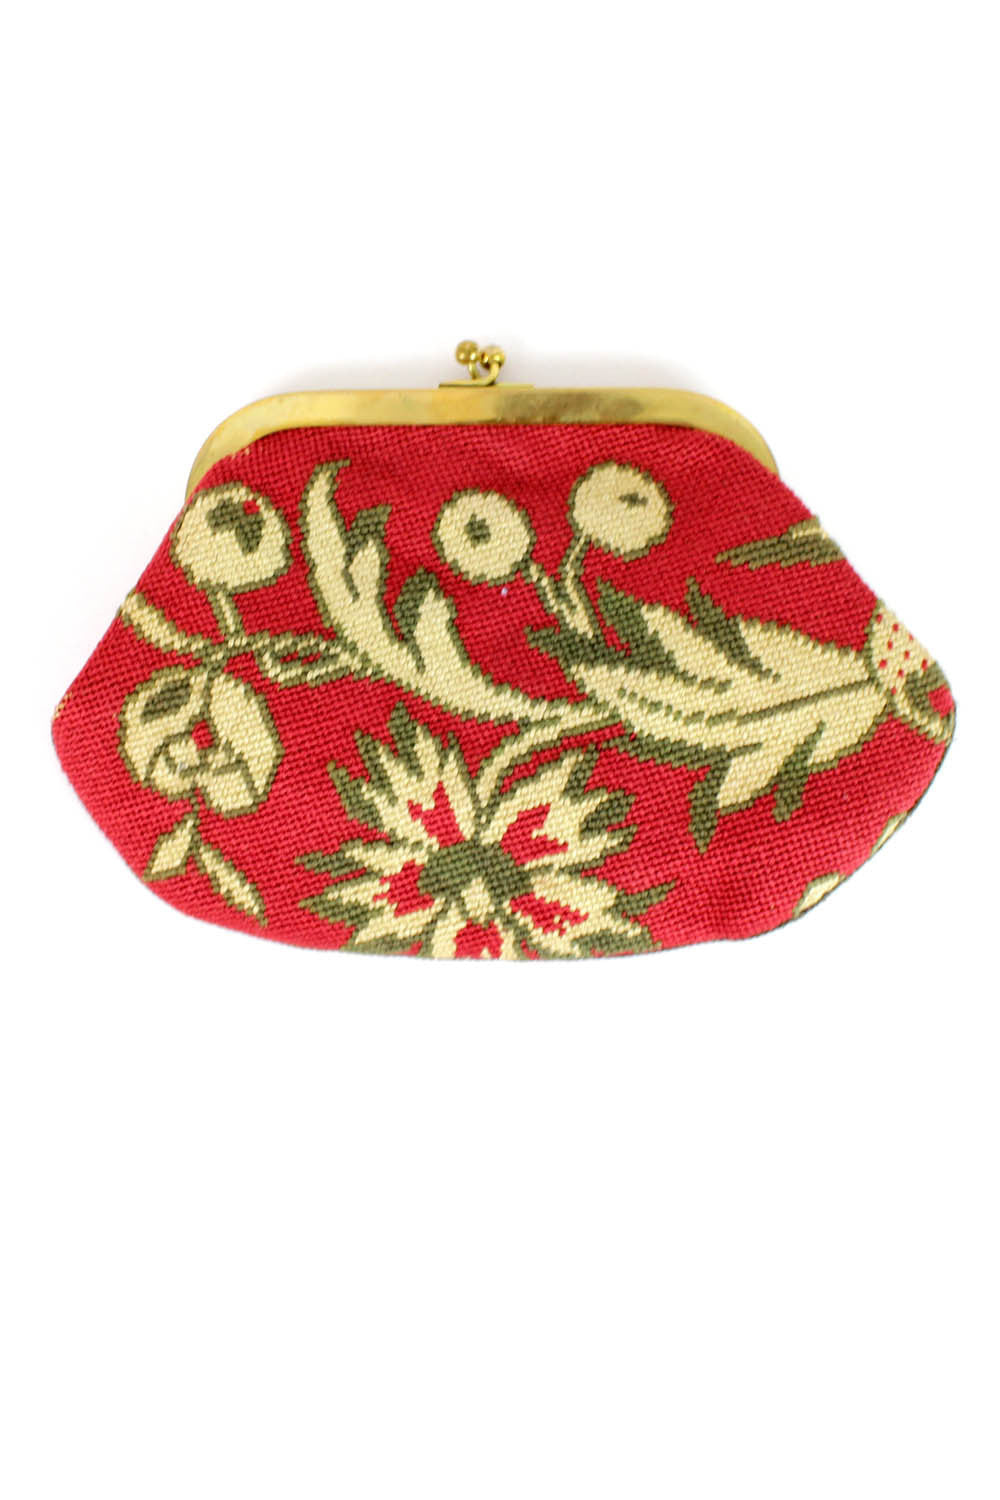 vintage needlepoint clutch